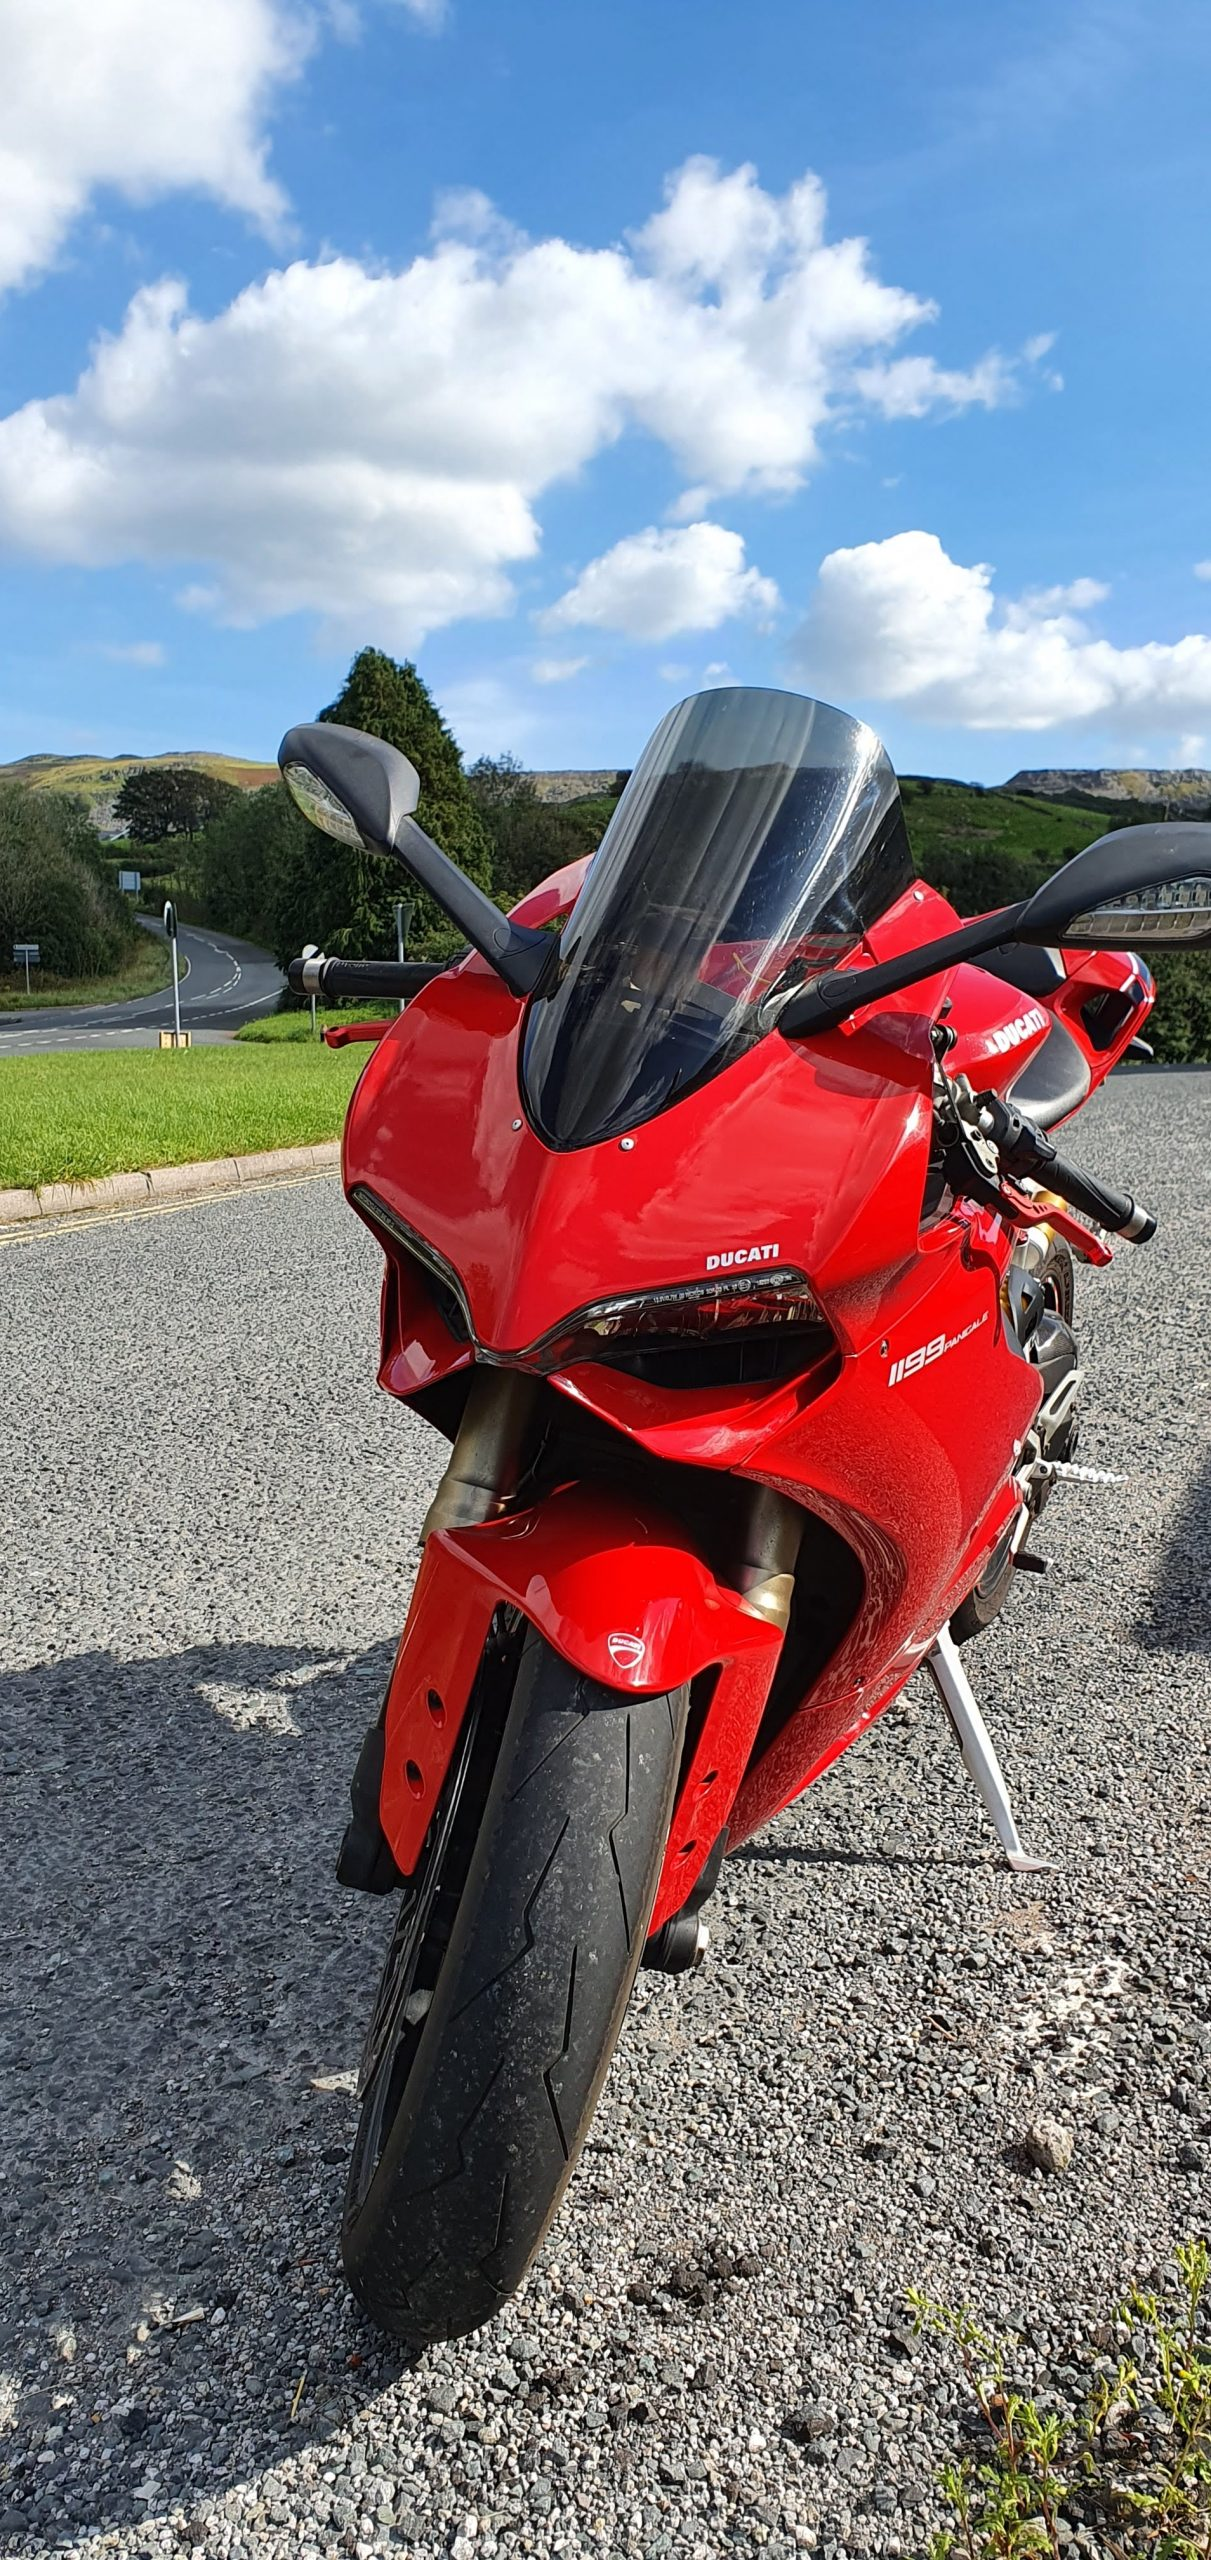 Ducati 1199 Panigale Review